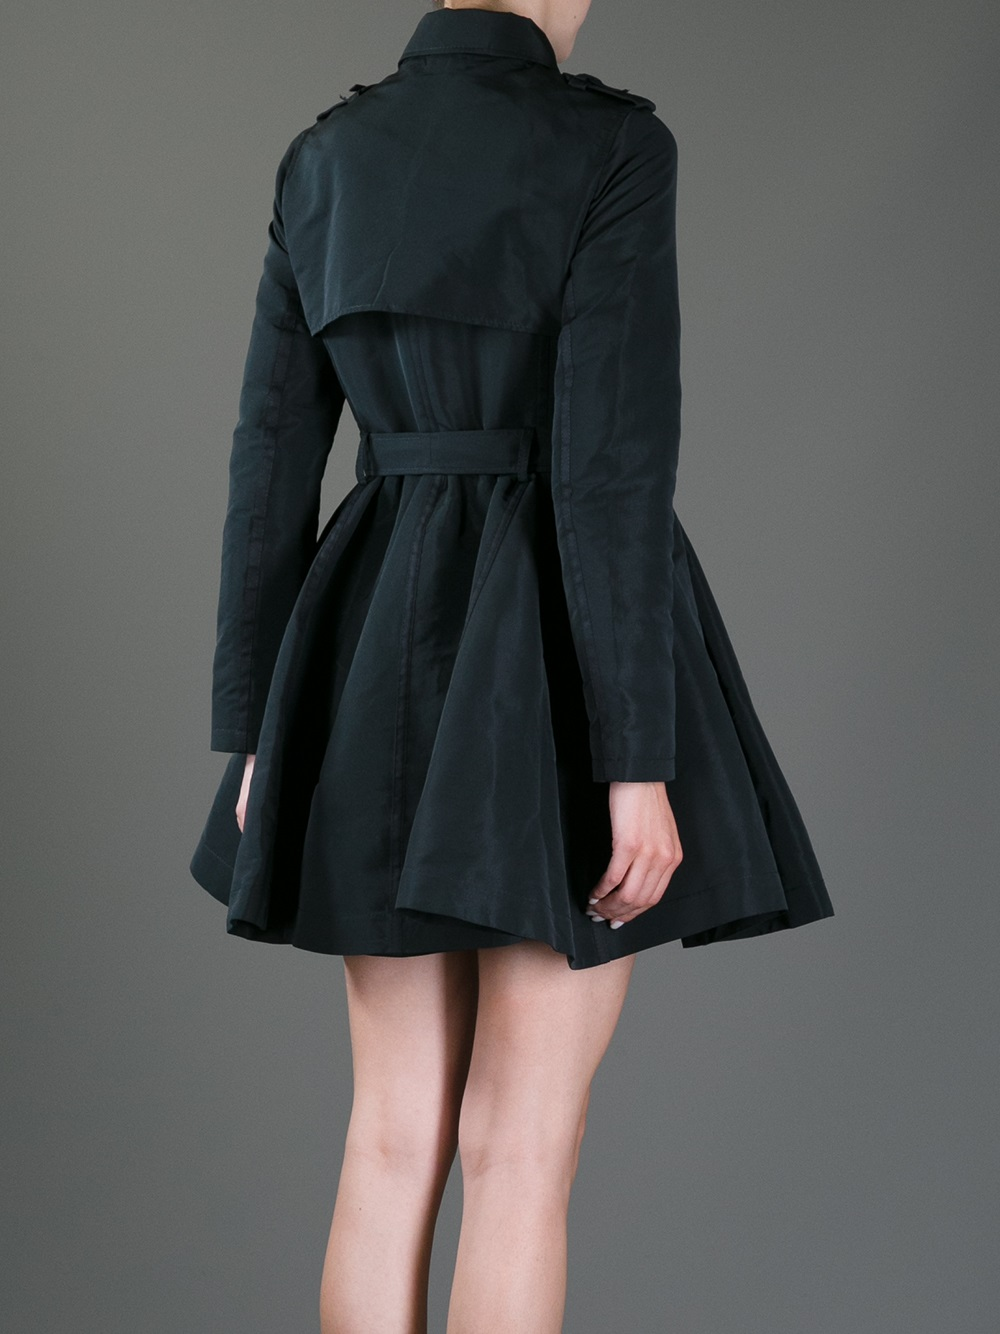 Red Valentino Trench Coat Dress In Gray Lyst